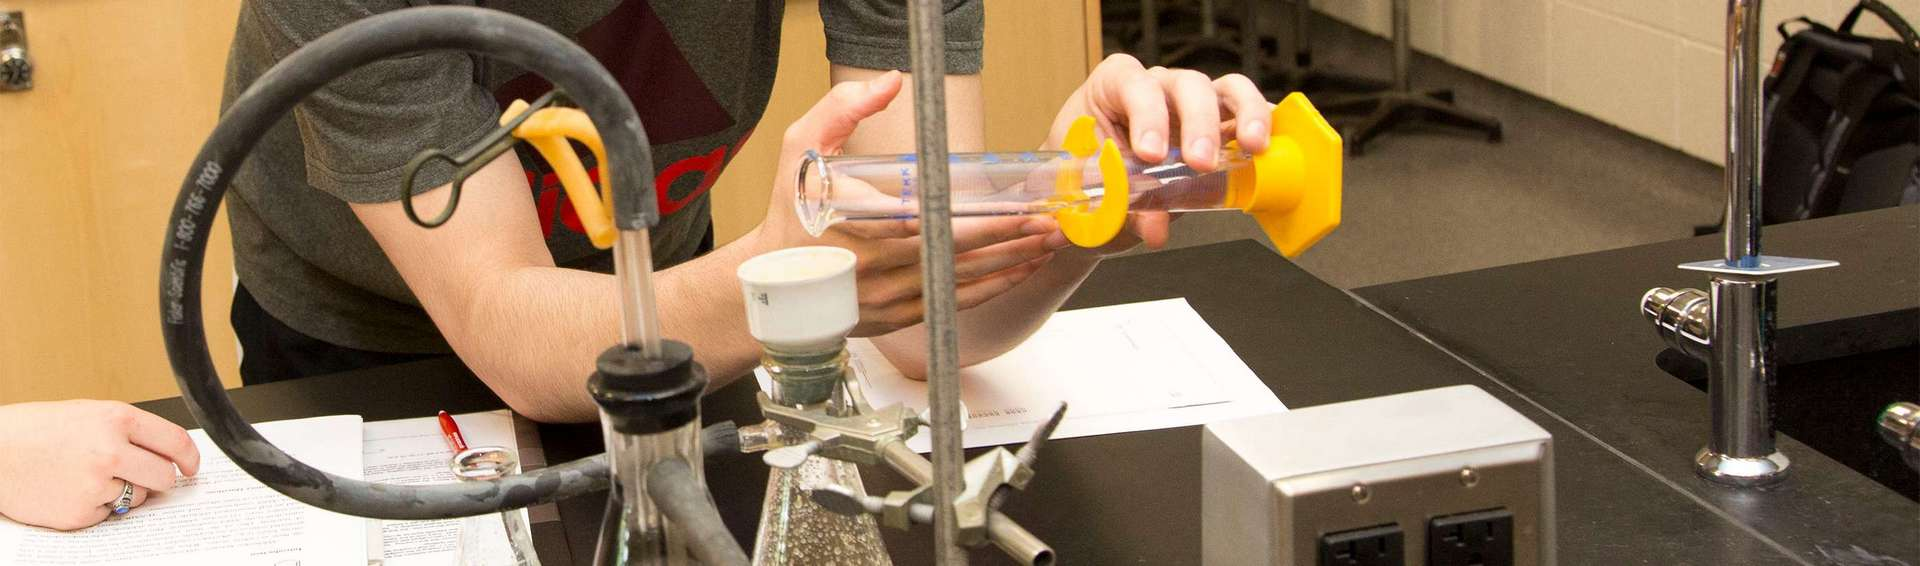 Close up of hands and chemistry equipment.